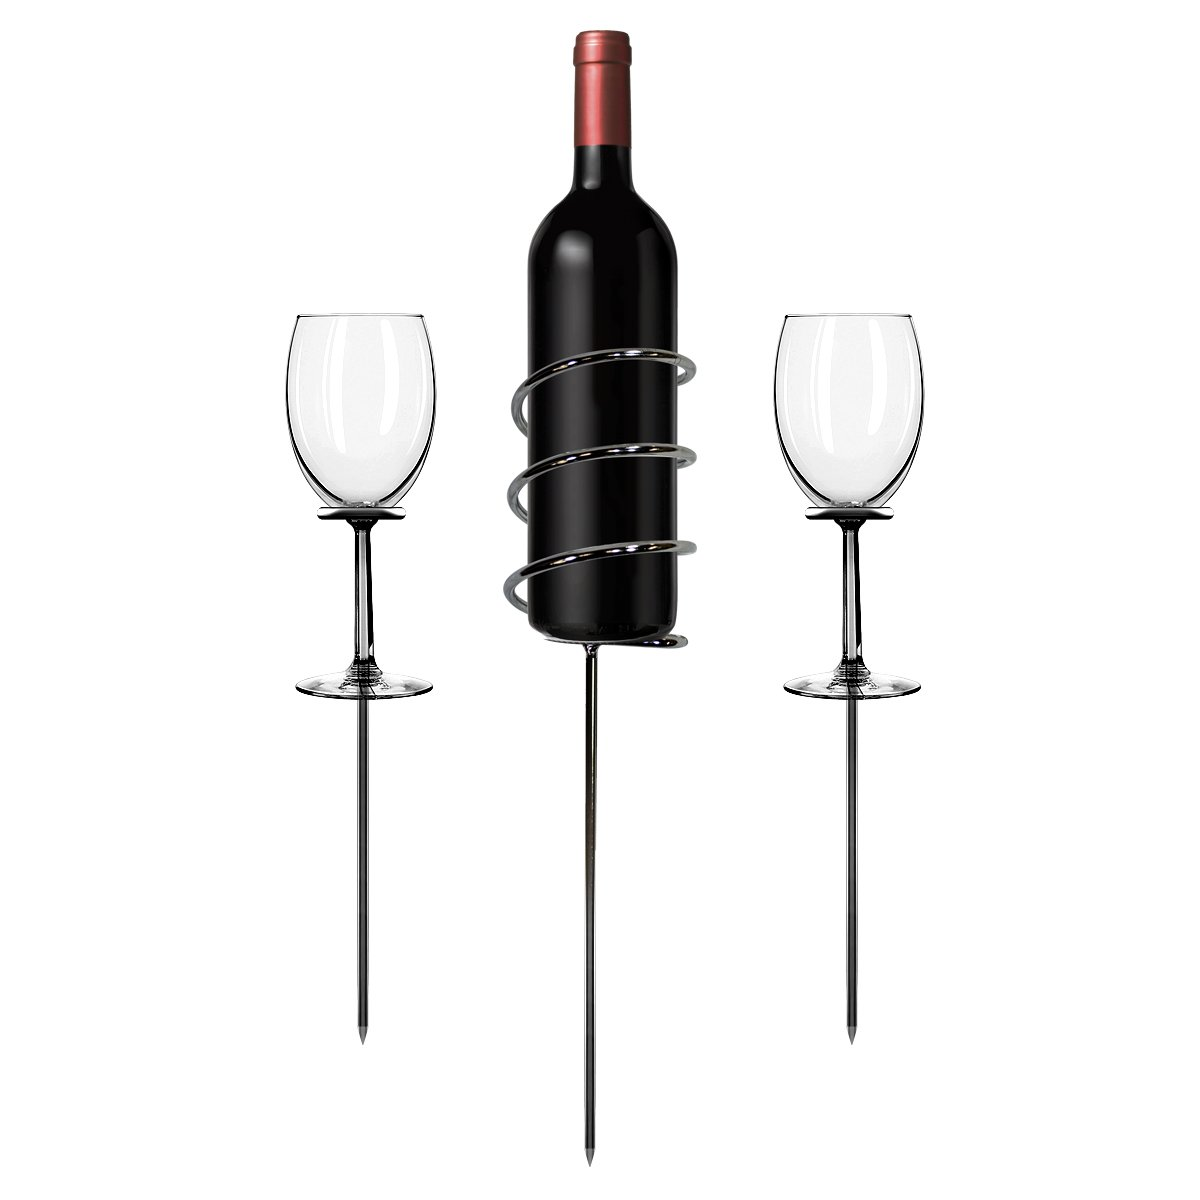 Sorbus Wine Stakes Set, Wine Sticks Holds Bottle and 2 Glasses Preventing Them from Spilling or Breaking WN-HLD3